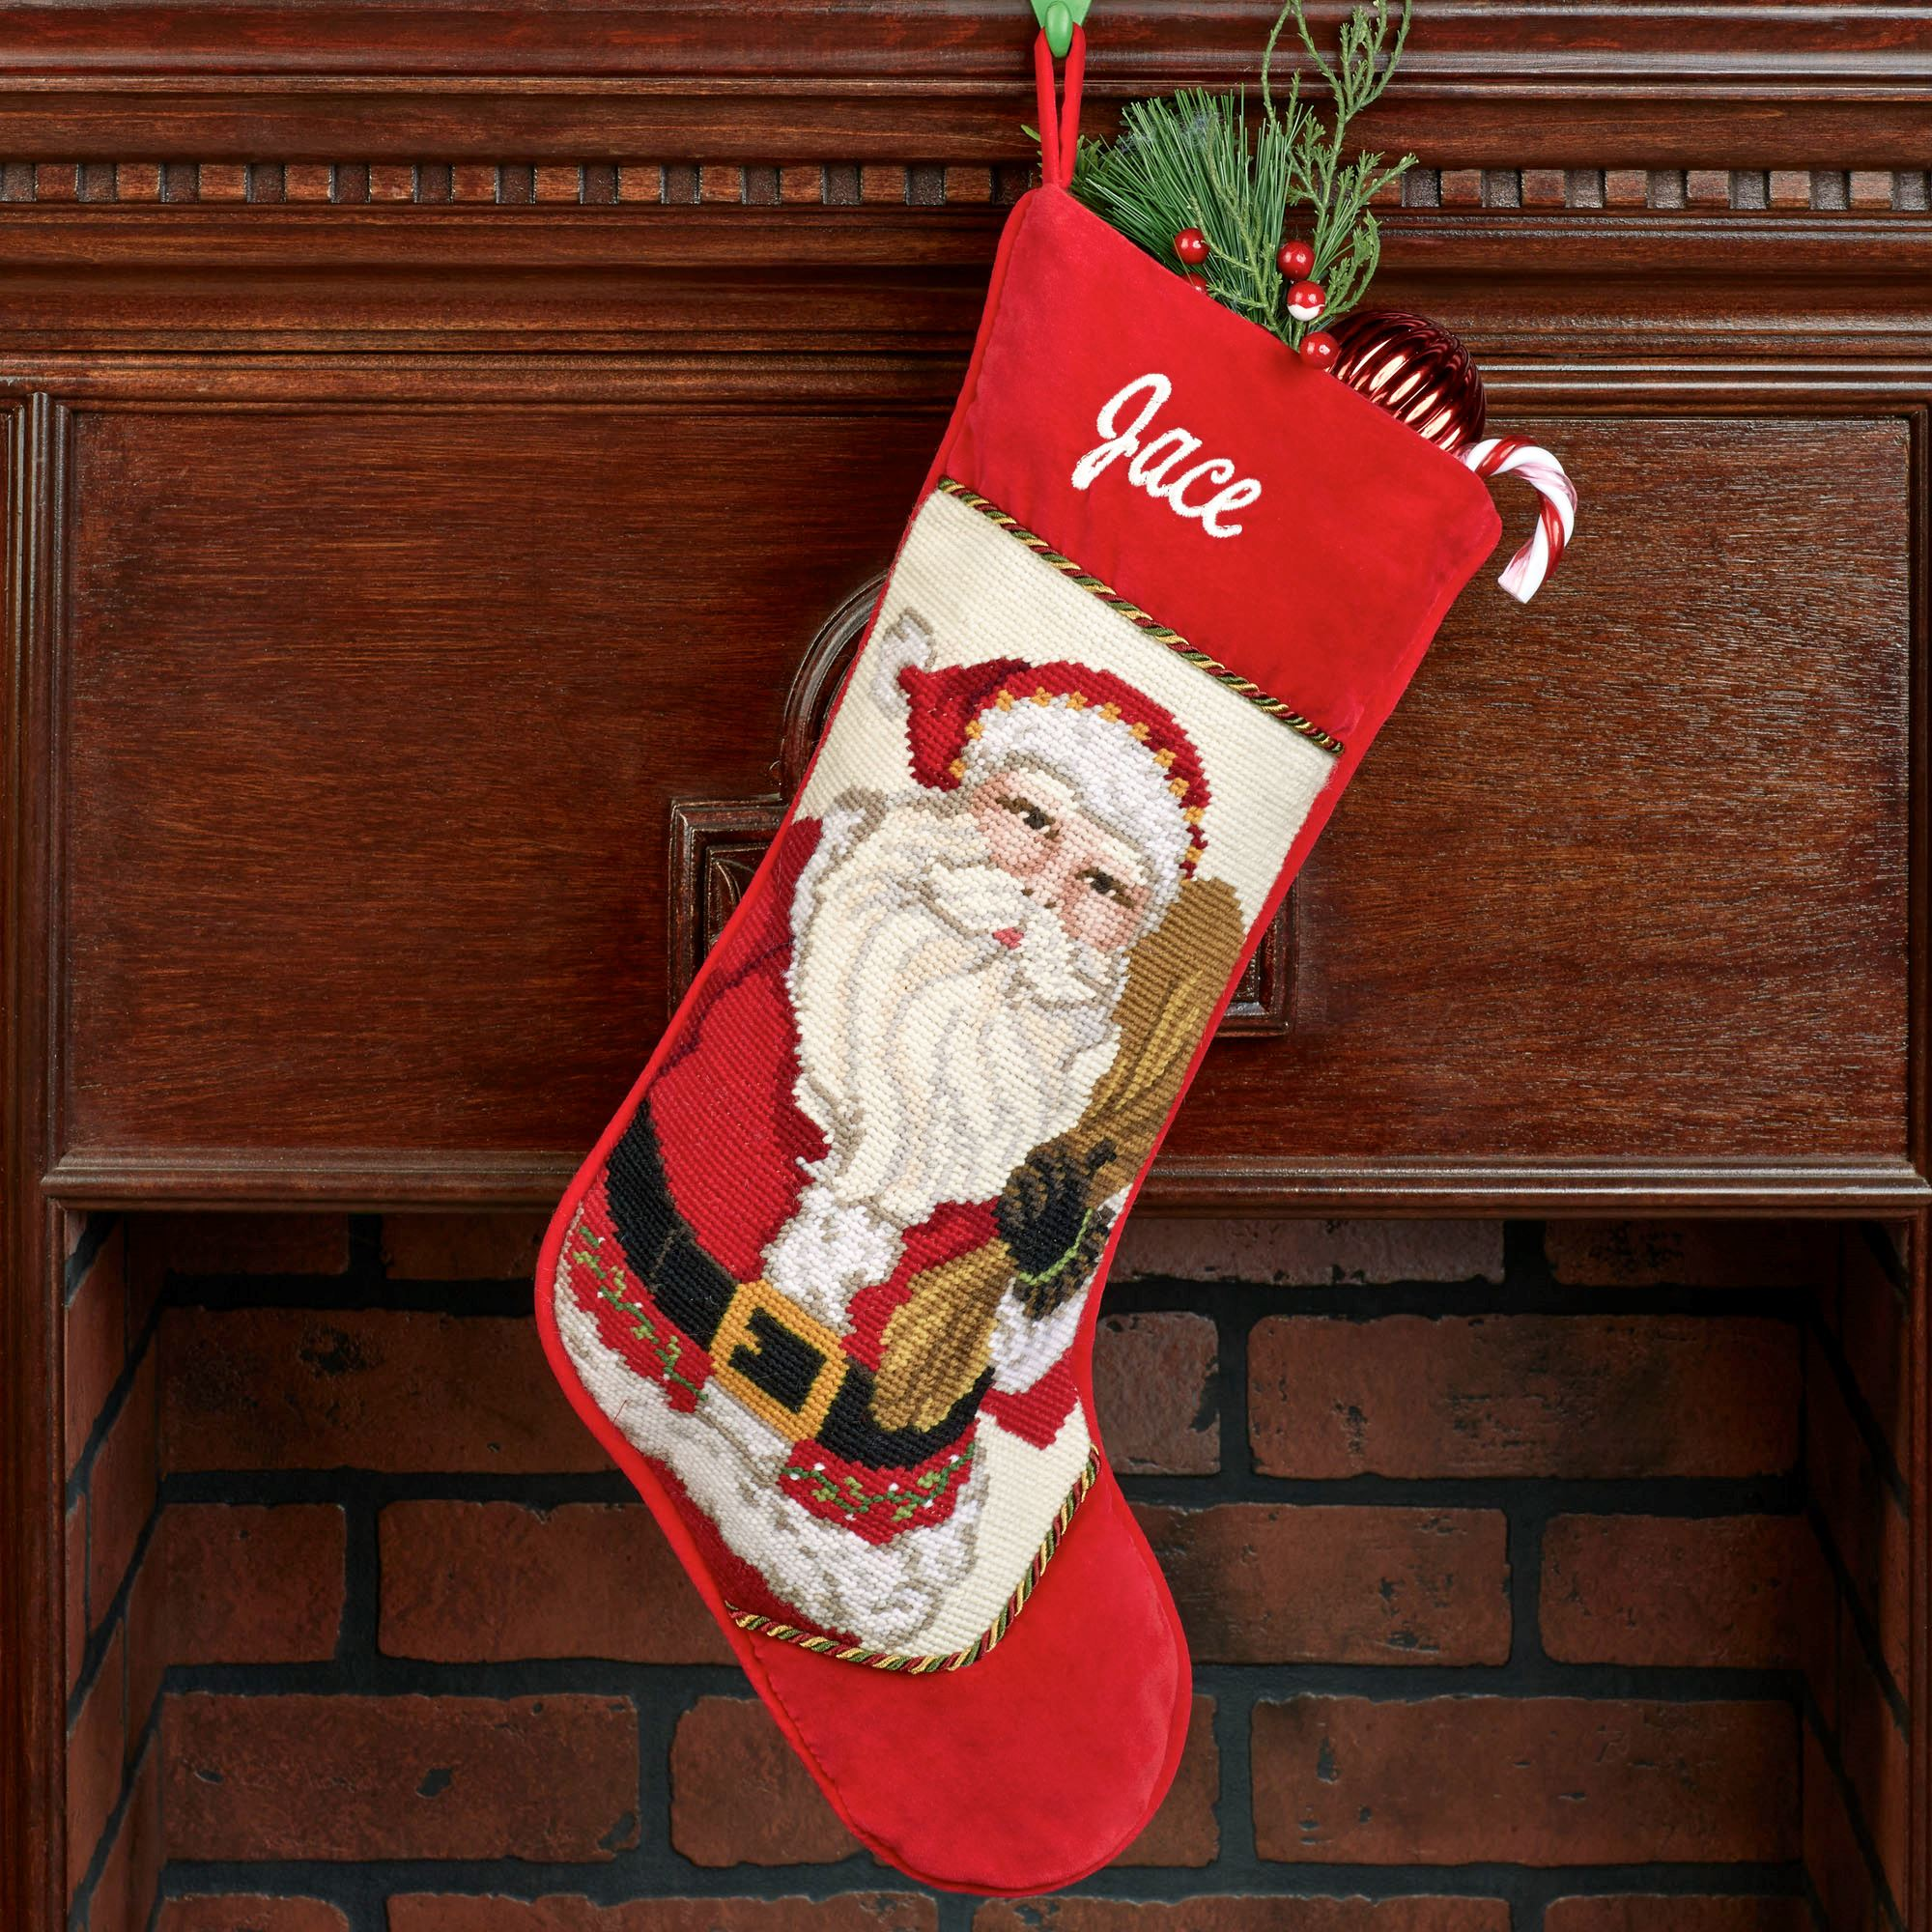 Awesome Personalized Needlepoint Christmas Stockings For Christmas Decorating Ideas With Needlepoint Christmas Stockings Personalized